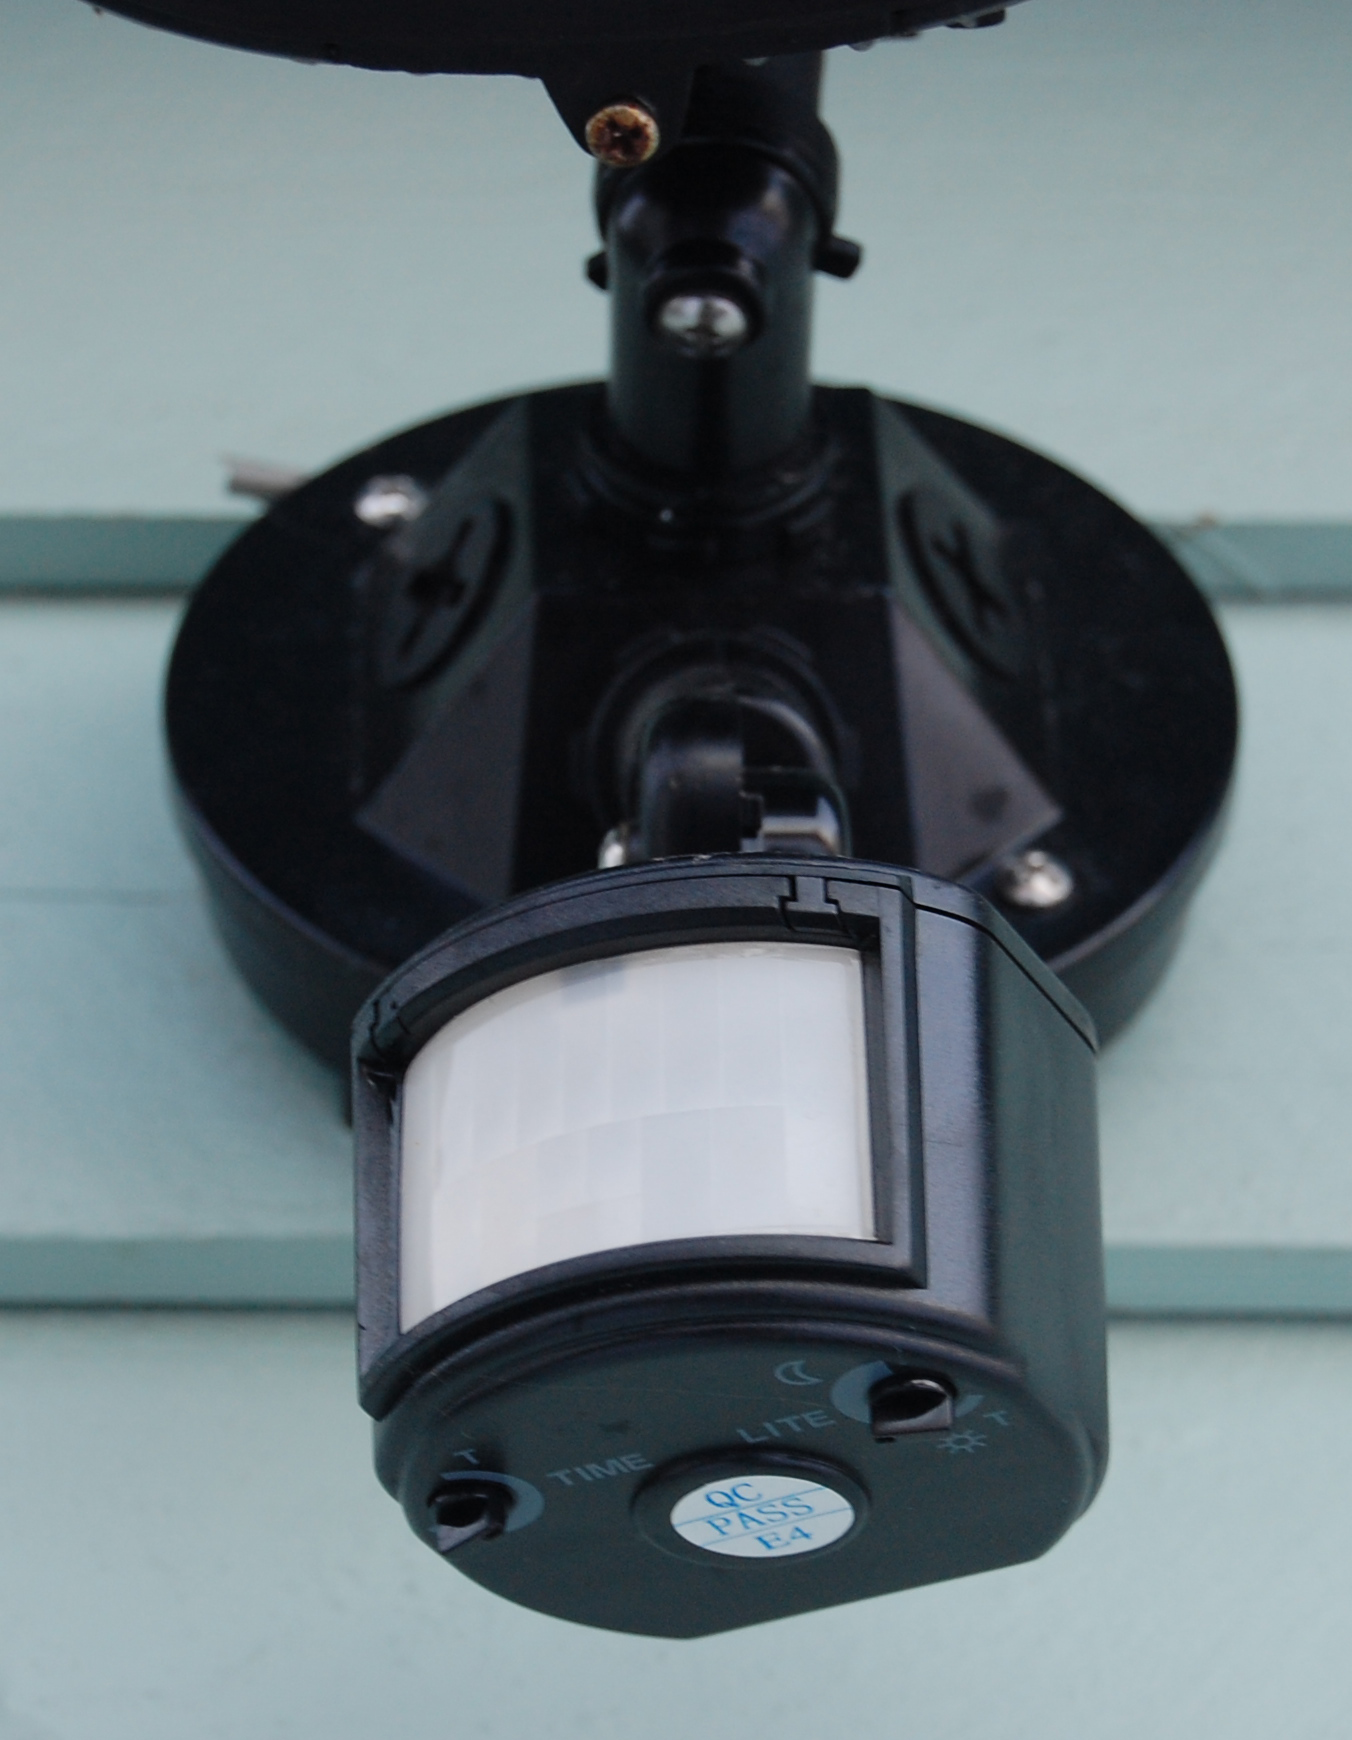 Motion Detector Lights Outdoor Help My Motion Lights Won T Turn Off Security Lighting In Bethesda